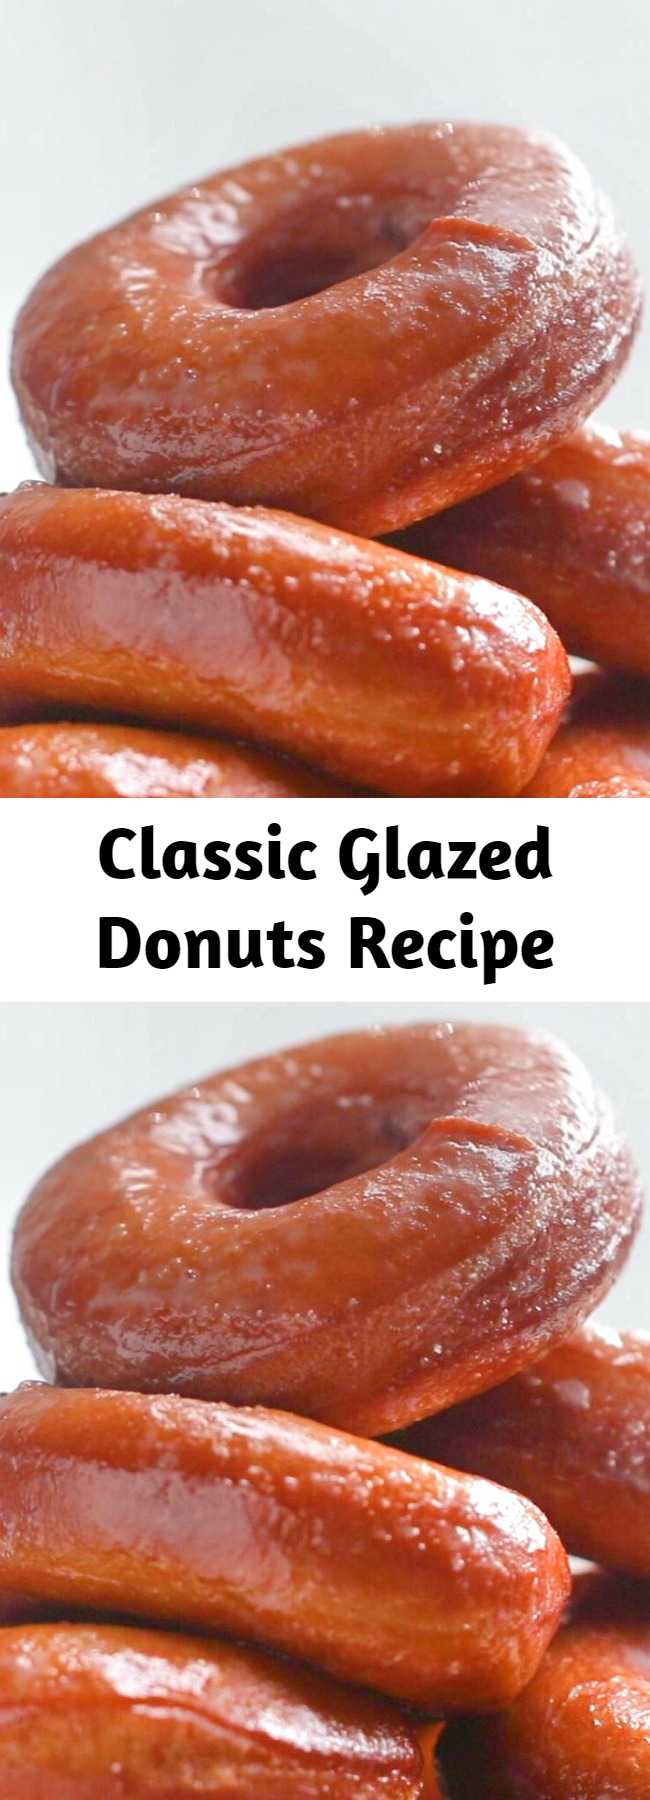 This Classic Glazed Donuts recipe makes light and fluffy donuts that are truly the best donuts I've ever eaten. They're my absolute favorite! Homemade doughnuts are a bit of a project, but they're less work than you might think, and the result is a truly great, hot, crisp doughnut.